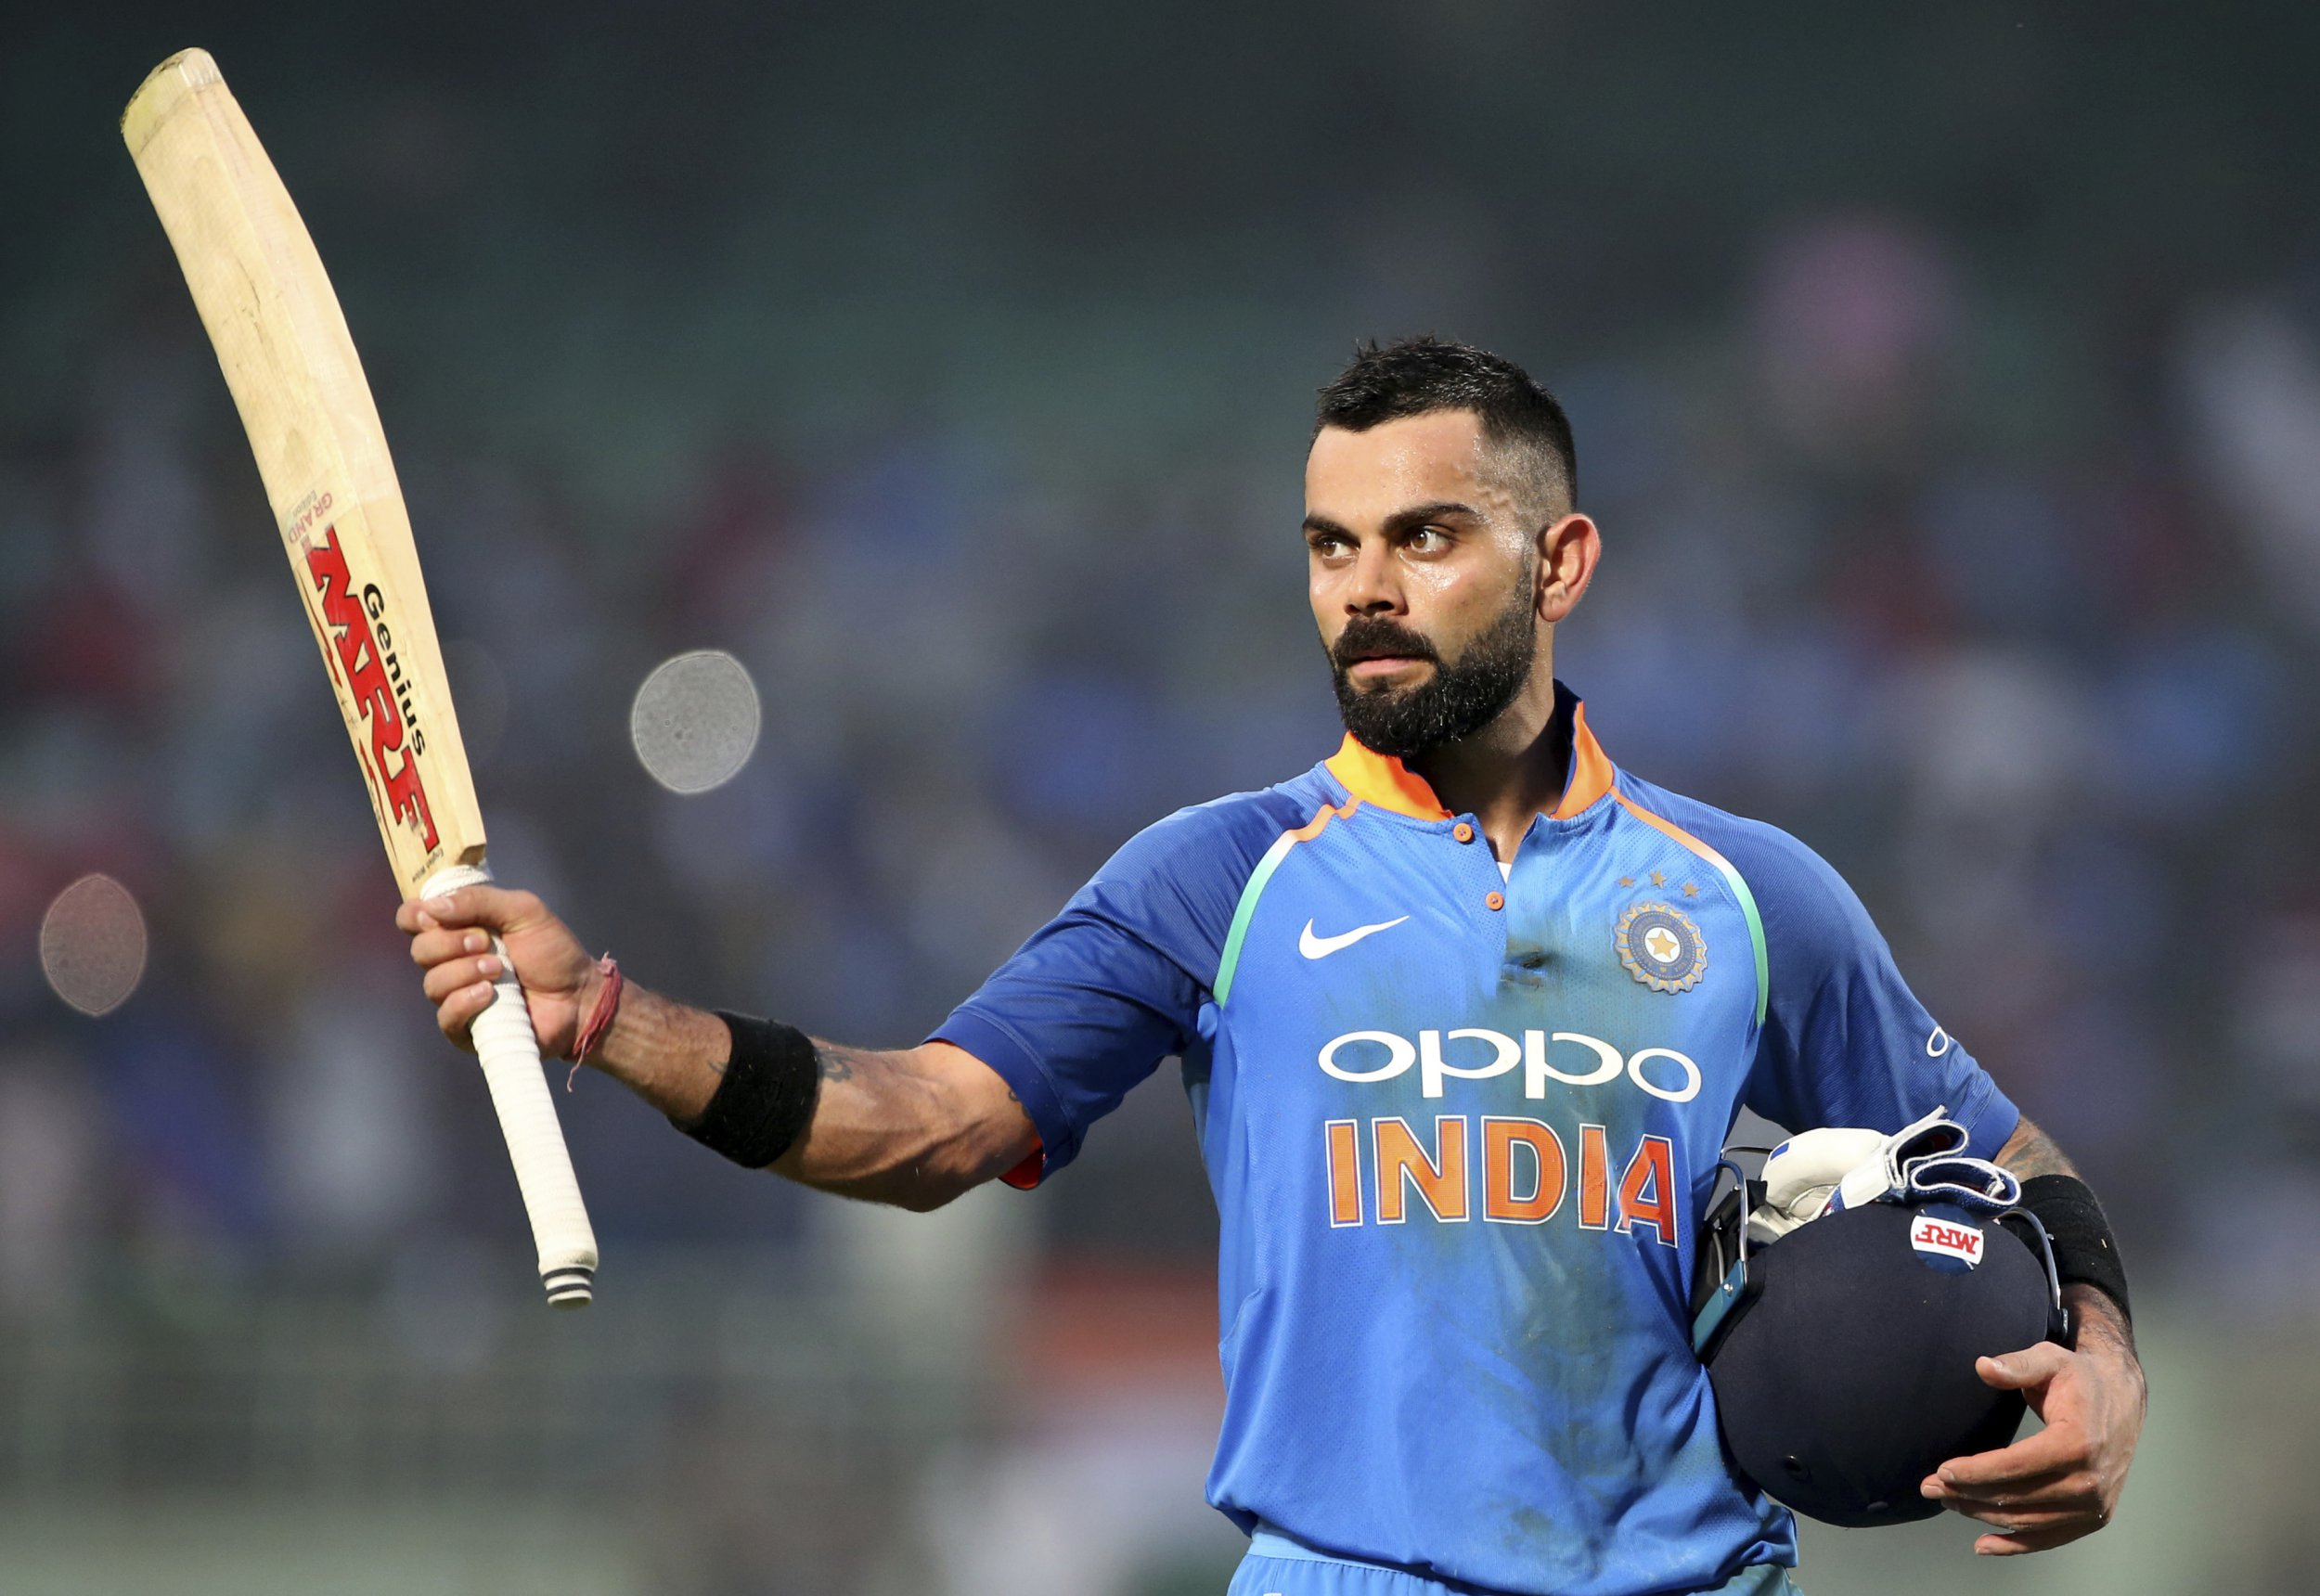 India's captain Virat Kohli raises his bat to acknowledge the applause from the spectators as he leaves the field at the end of their innings during the second one-day international cricket match between India and West Indies in Visakhapatnam, India, Wednesday, Oct. 24, 2018. (AP Photo/Aijaz Rahi)